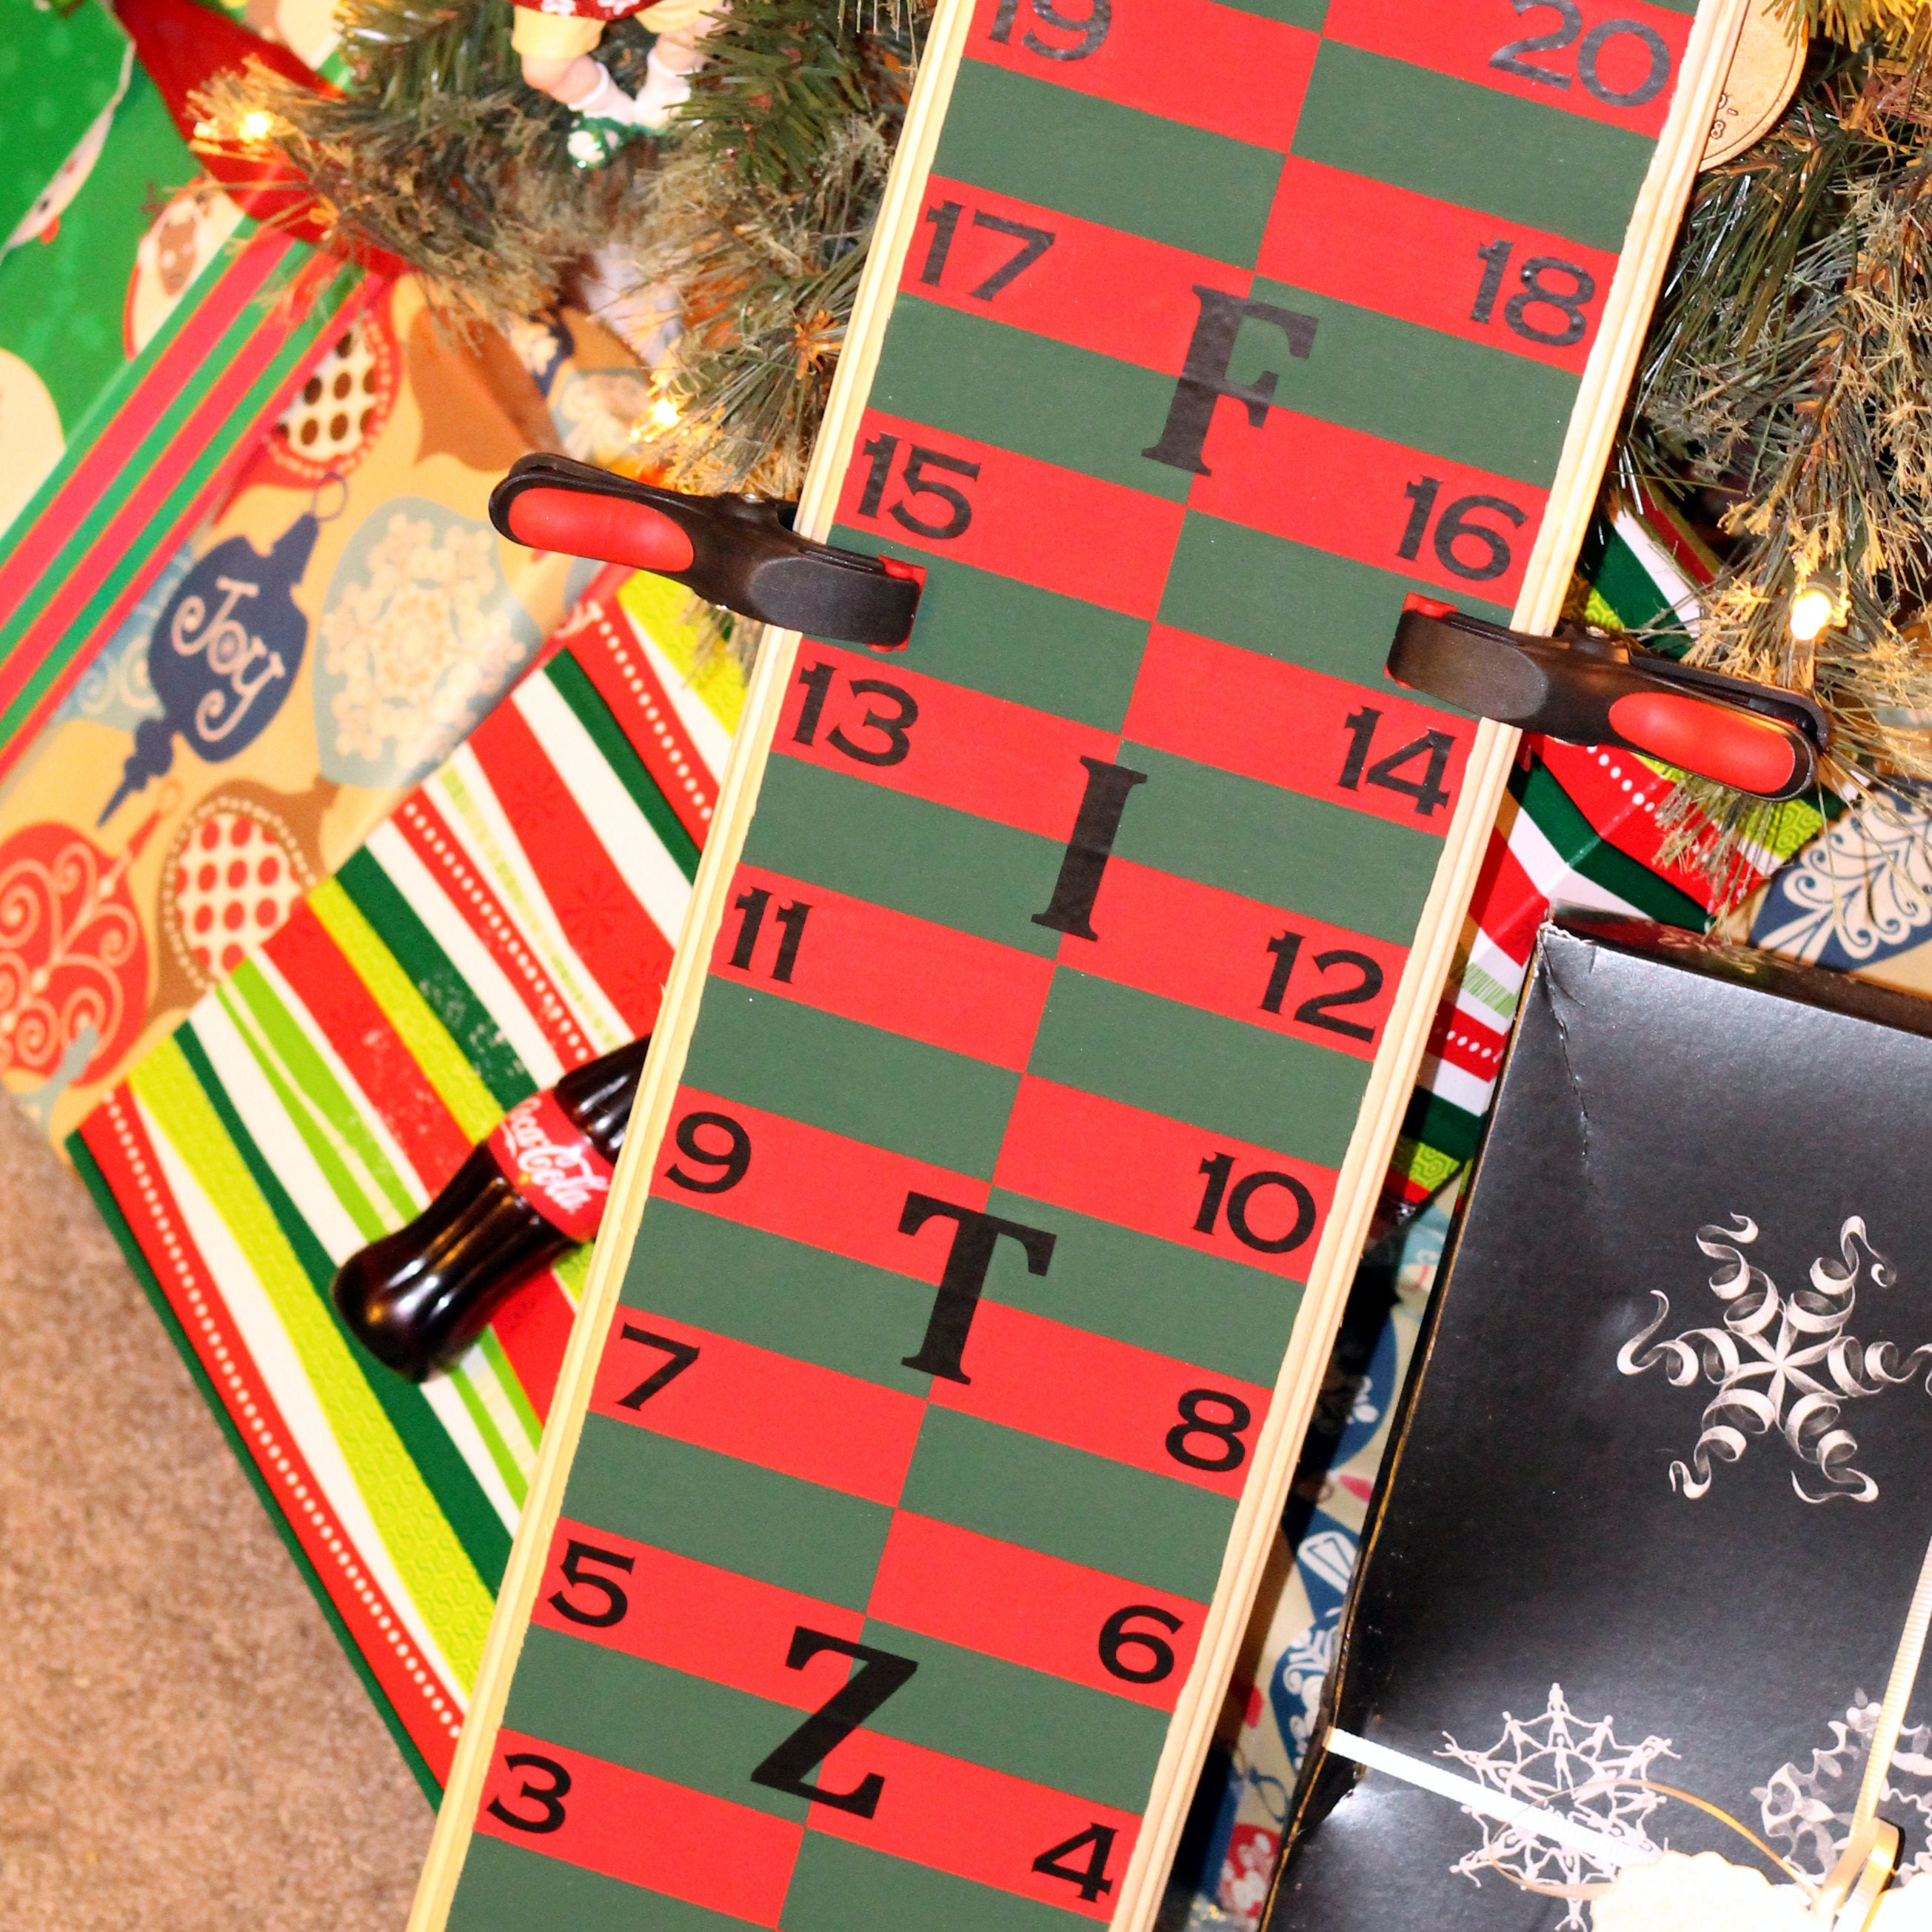 scoreboards for all your backyard games by craftyerin on etsy